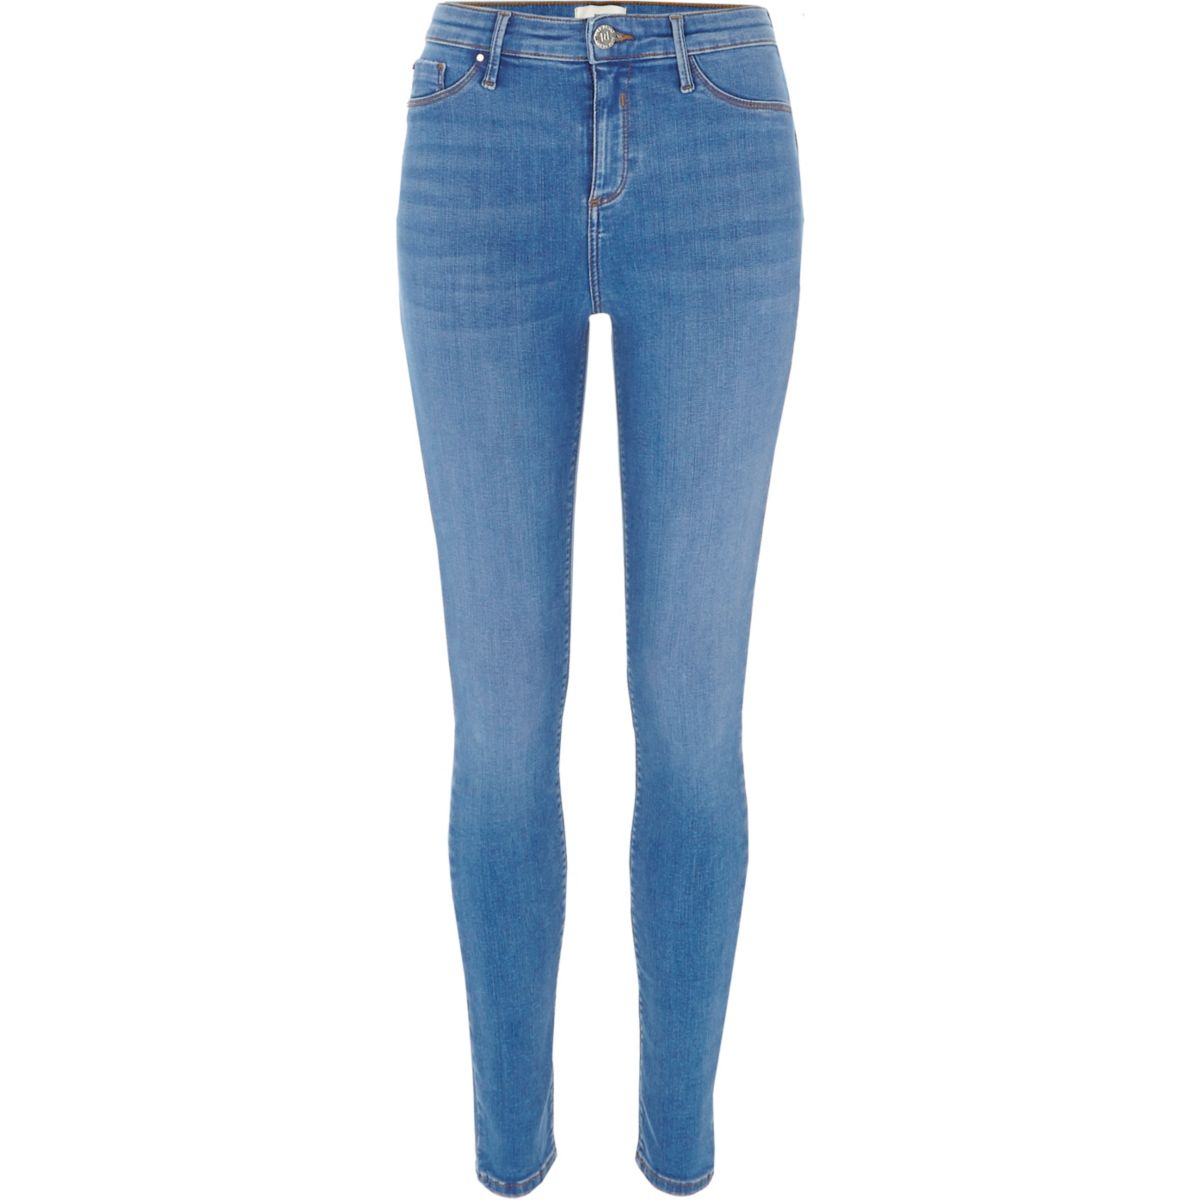 Cheap Sale Eastbay Womens Light Blue denim look leggings River Island Cheap Best Discount With Mastercard Cheap Sale Shopping Online V9kK7a